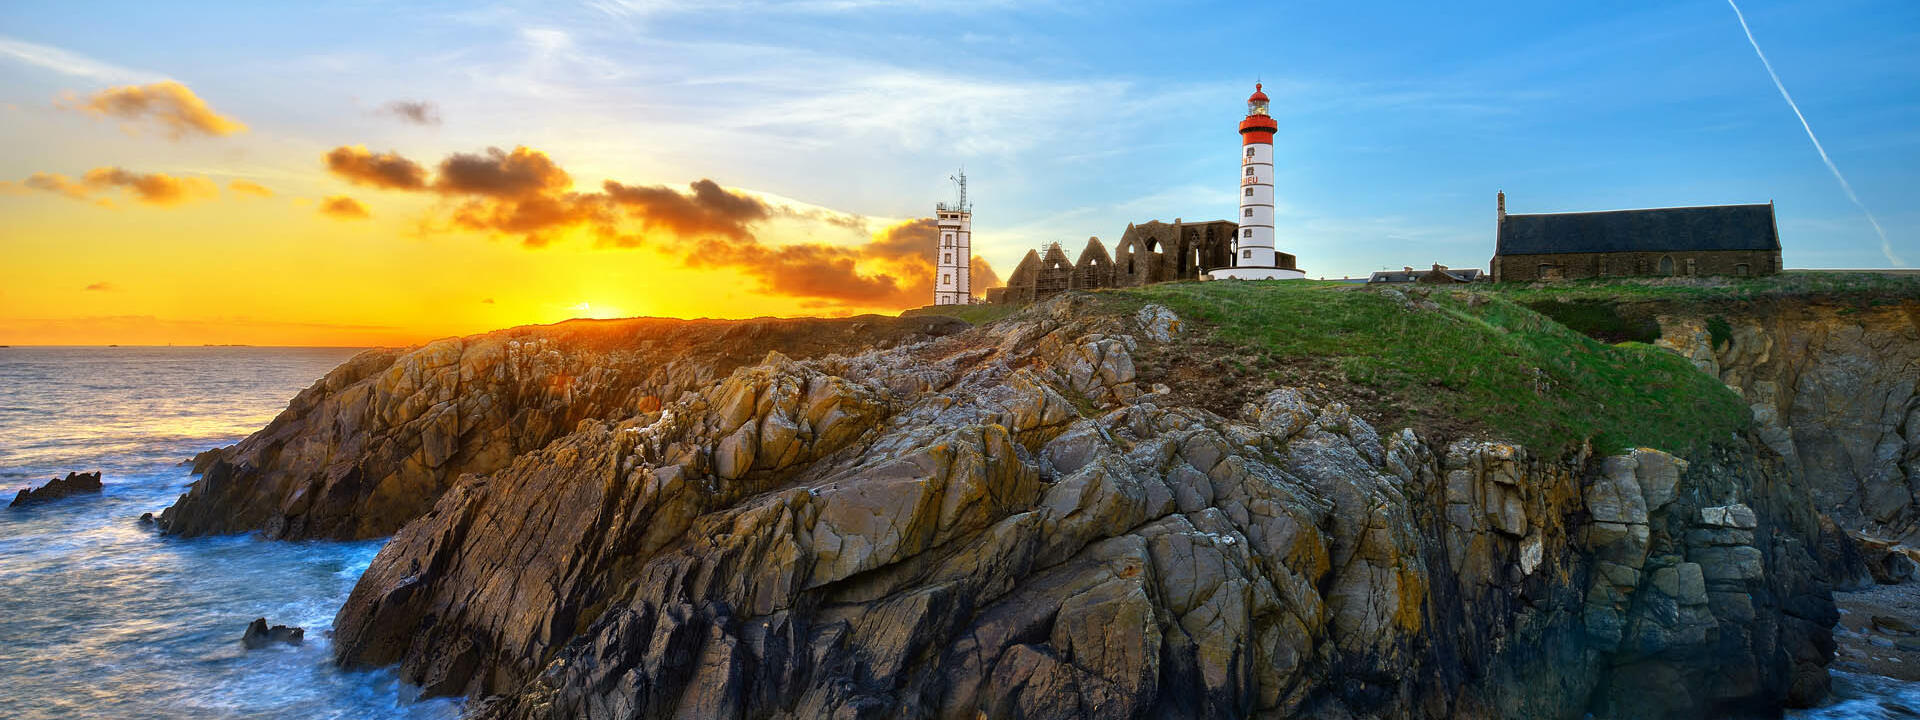 Shining a light on Brittany's lighthouses